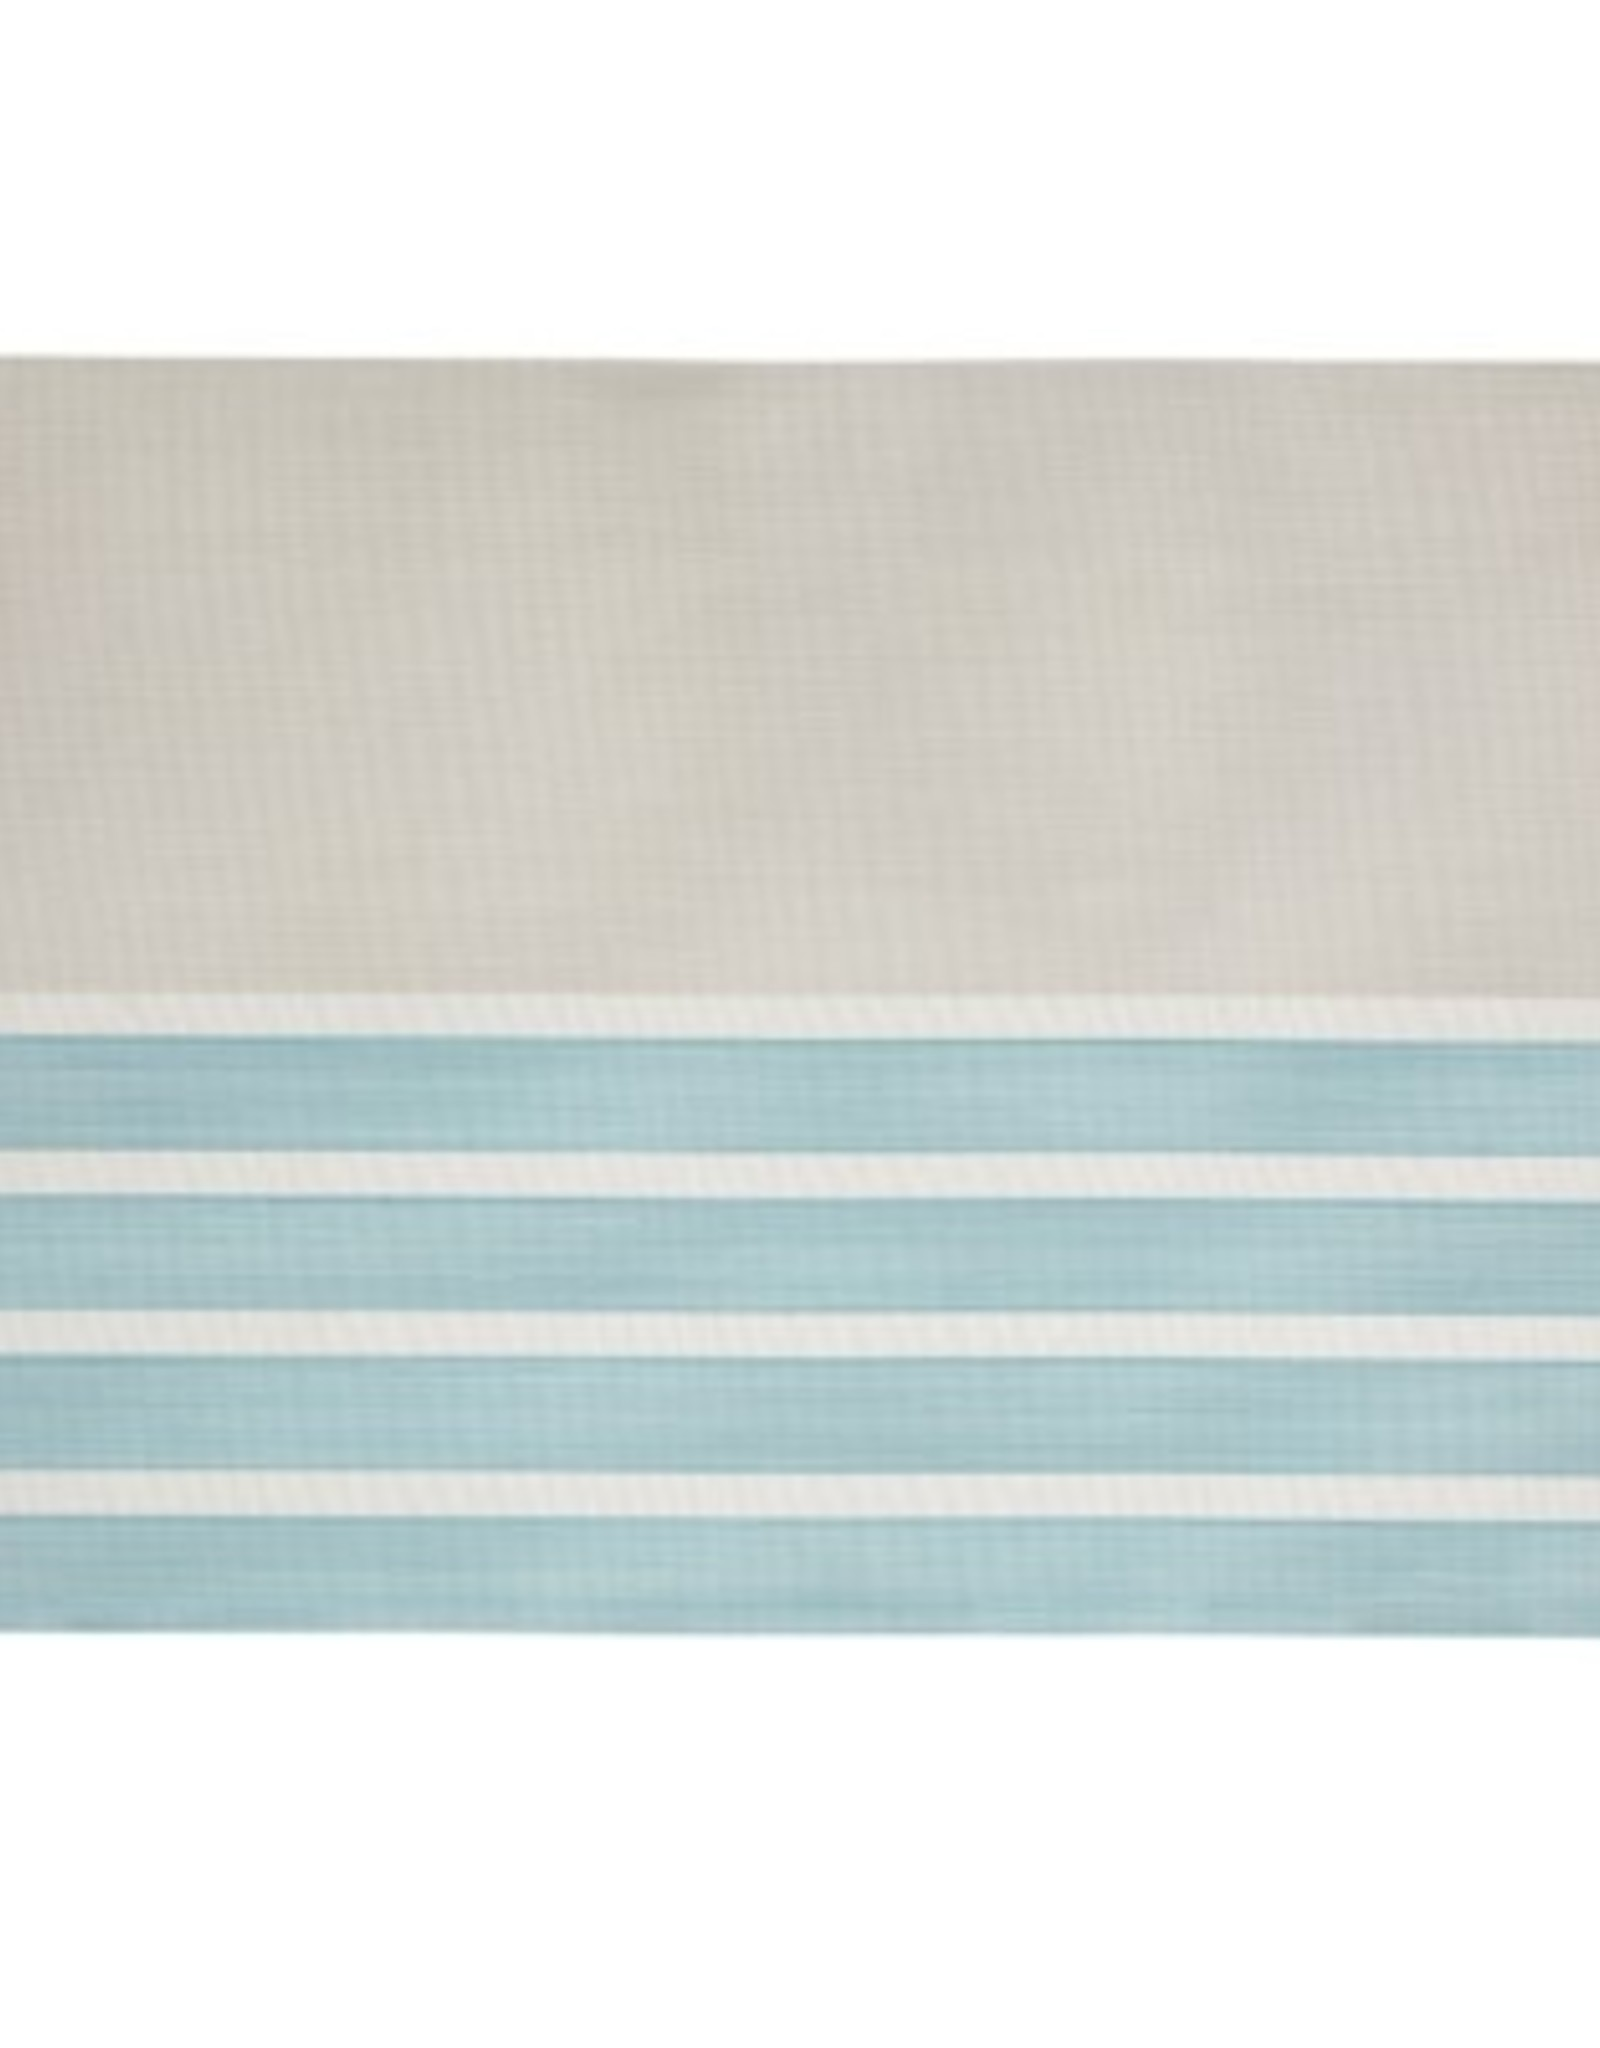 Placemat Harman Pacific Aqua Stripe Vinyl